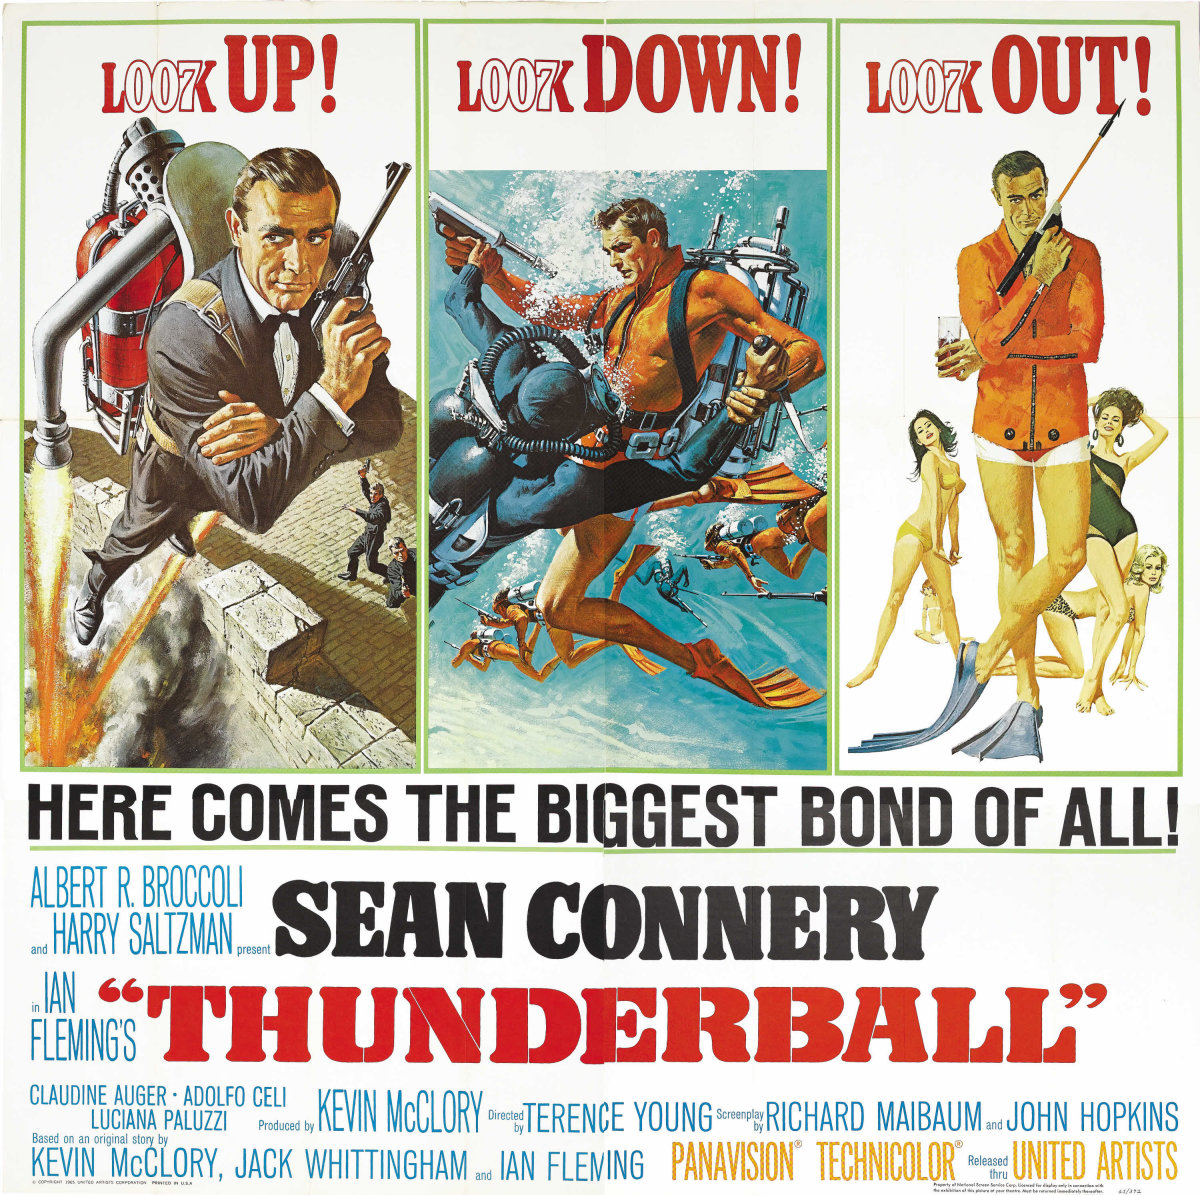 Thunderball (1965) finds Bond battling the sinister espionage organization SPECTRE, which has hijacked a pair of nuclear bombs and is threatening to use them unless a ransom of 100,000,000 pounds is paid. The mastermind behind this scheme is Emilio Largo, who has a nasty habit of feeding his adversaries to his pet sharks. The poster is one of the best ever made for the Bond franchise. It sold for $2,000.